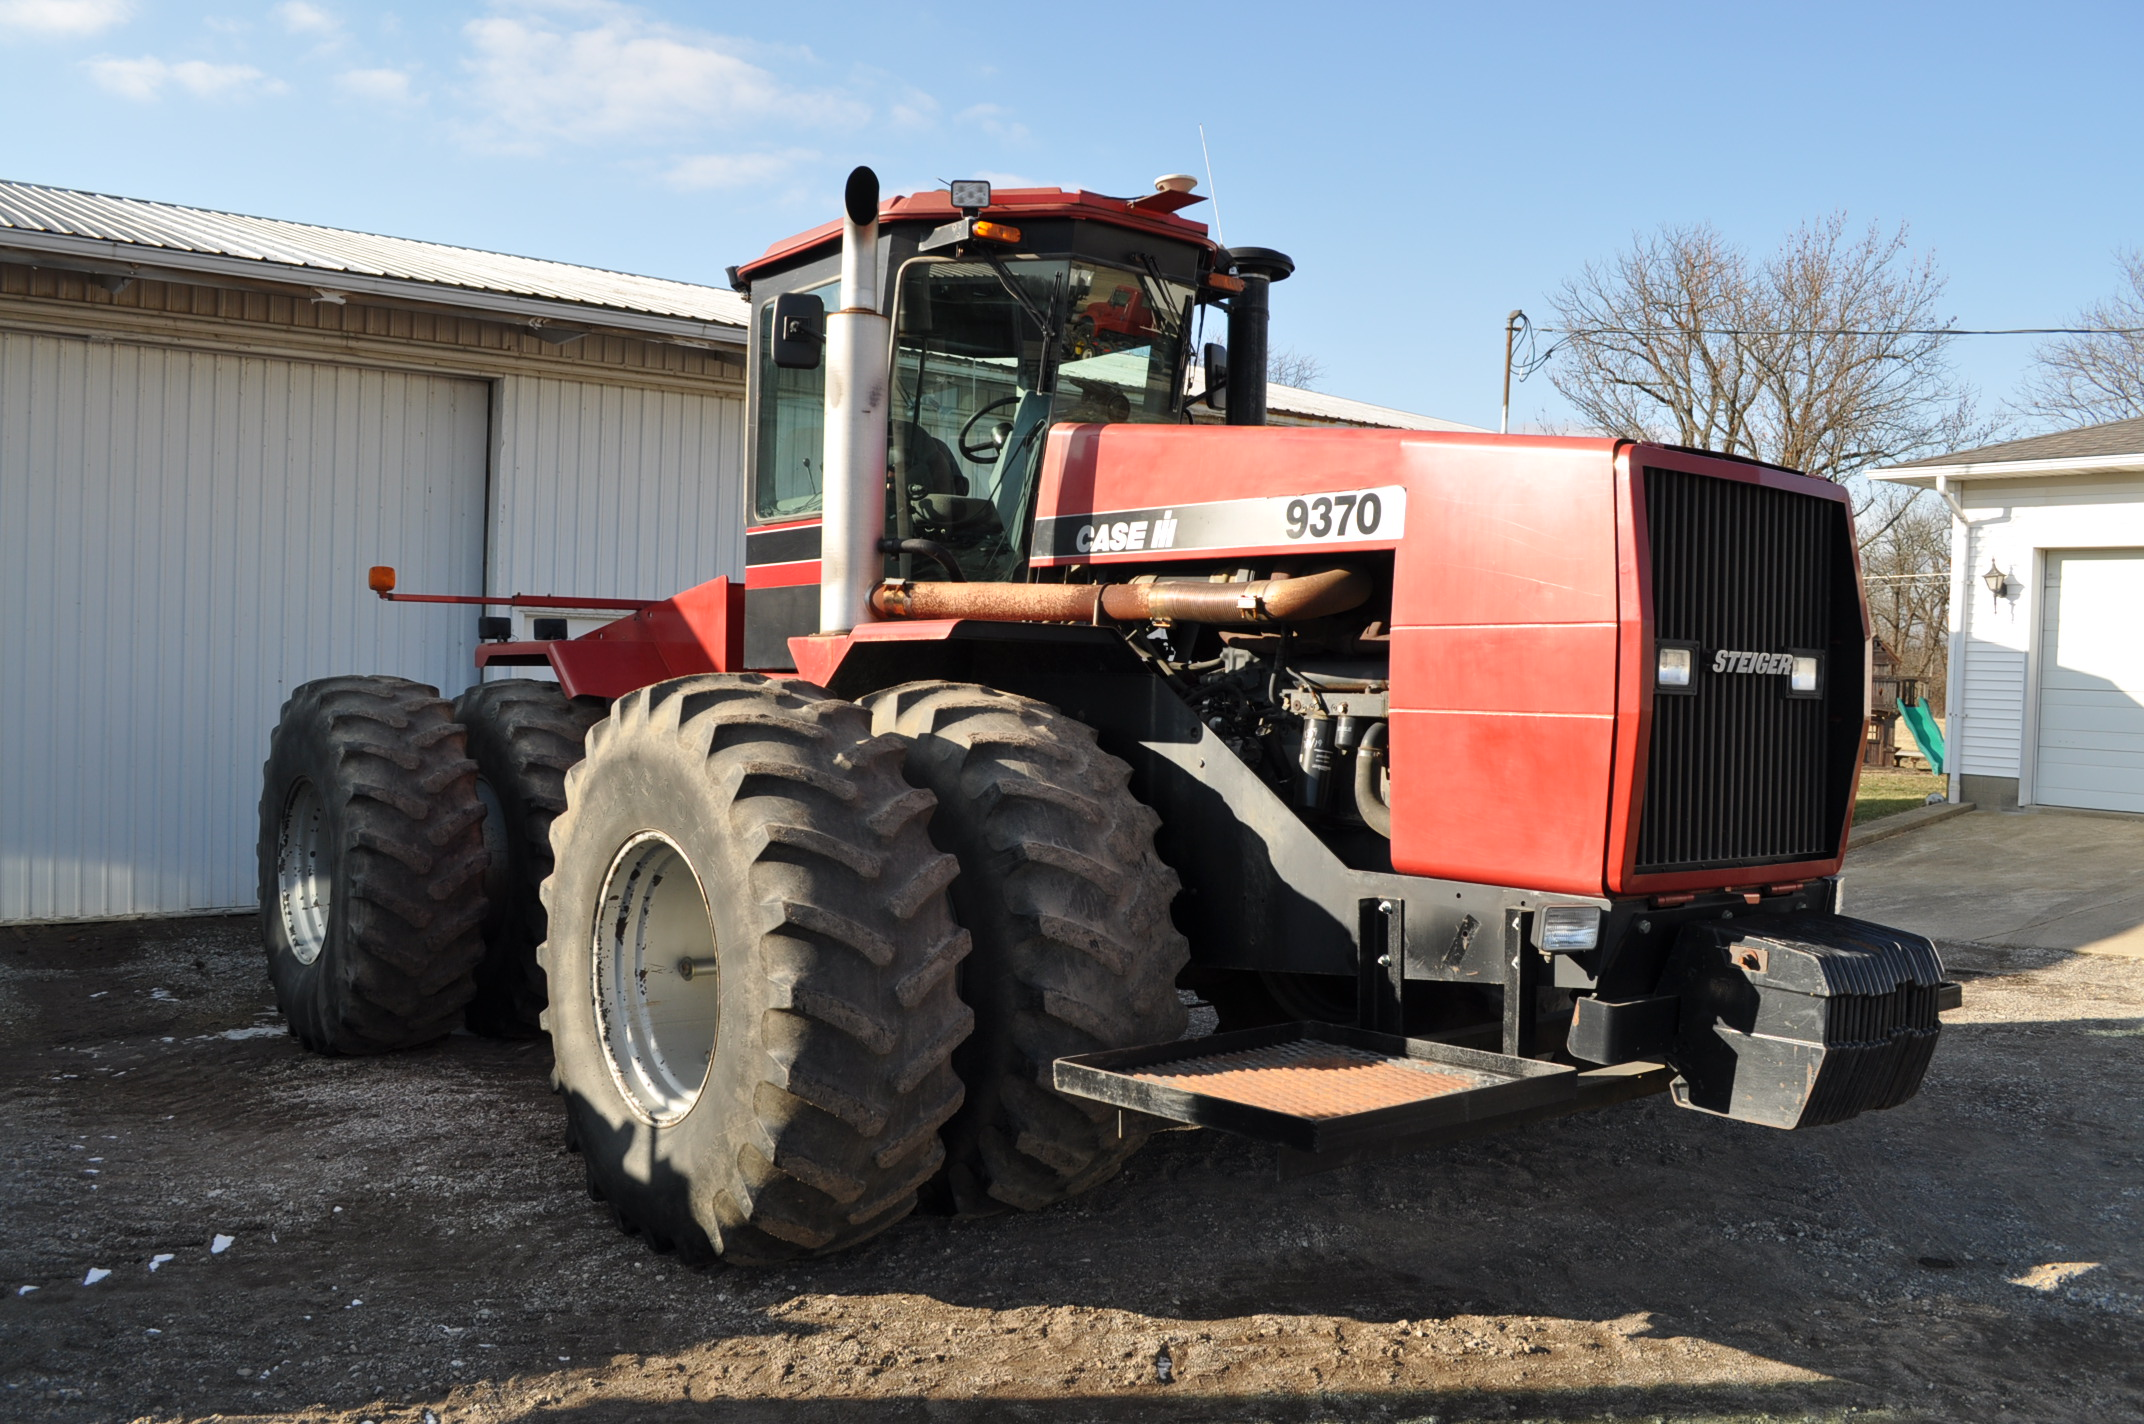 Case IH 9370 4WD tractor, 24.5R32 duals, power shift, skip shift, 4 hyd remotes, 4622 hrs, front